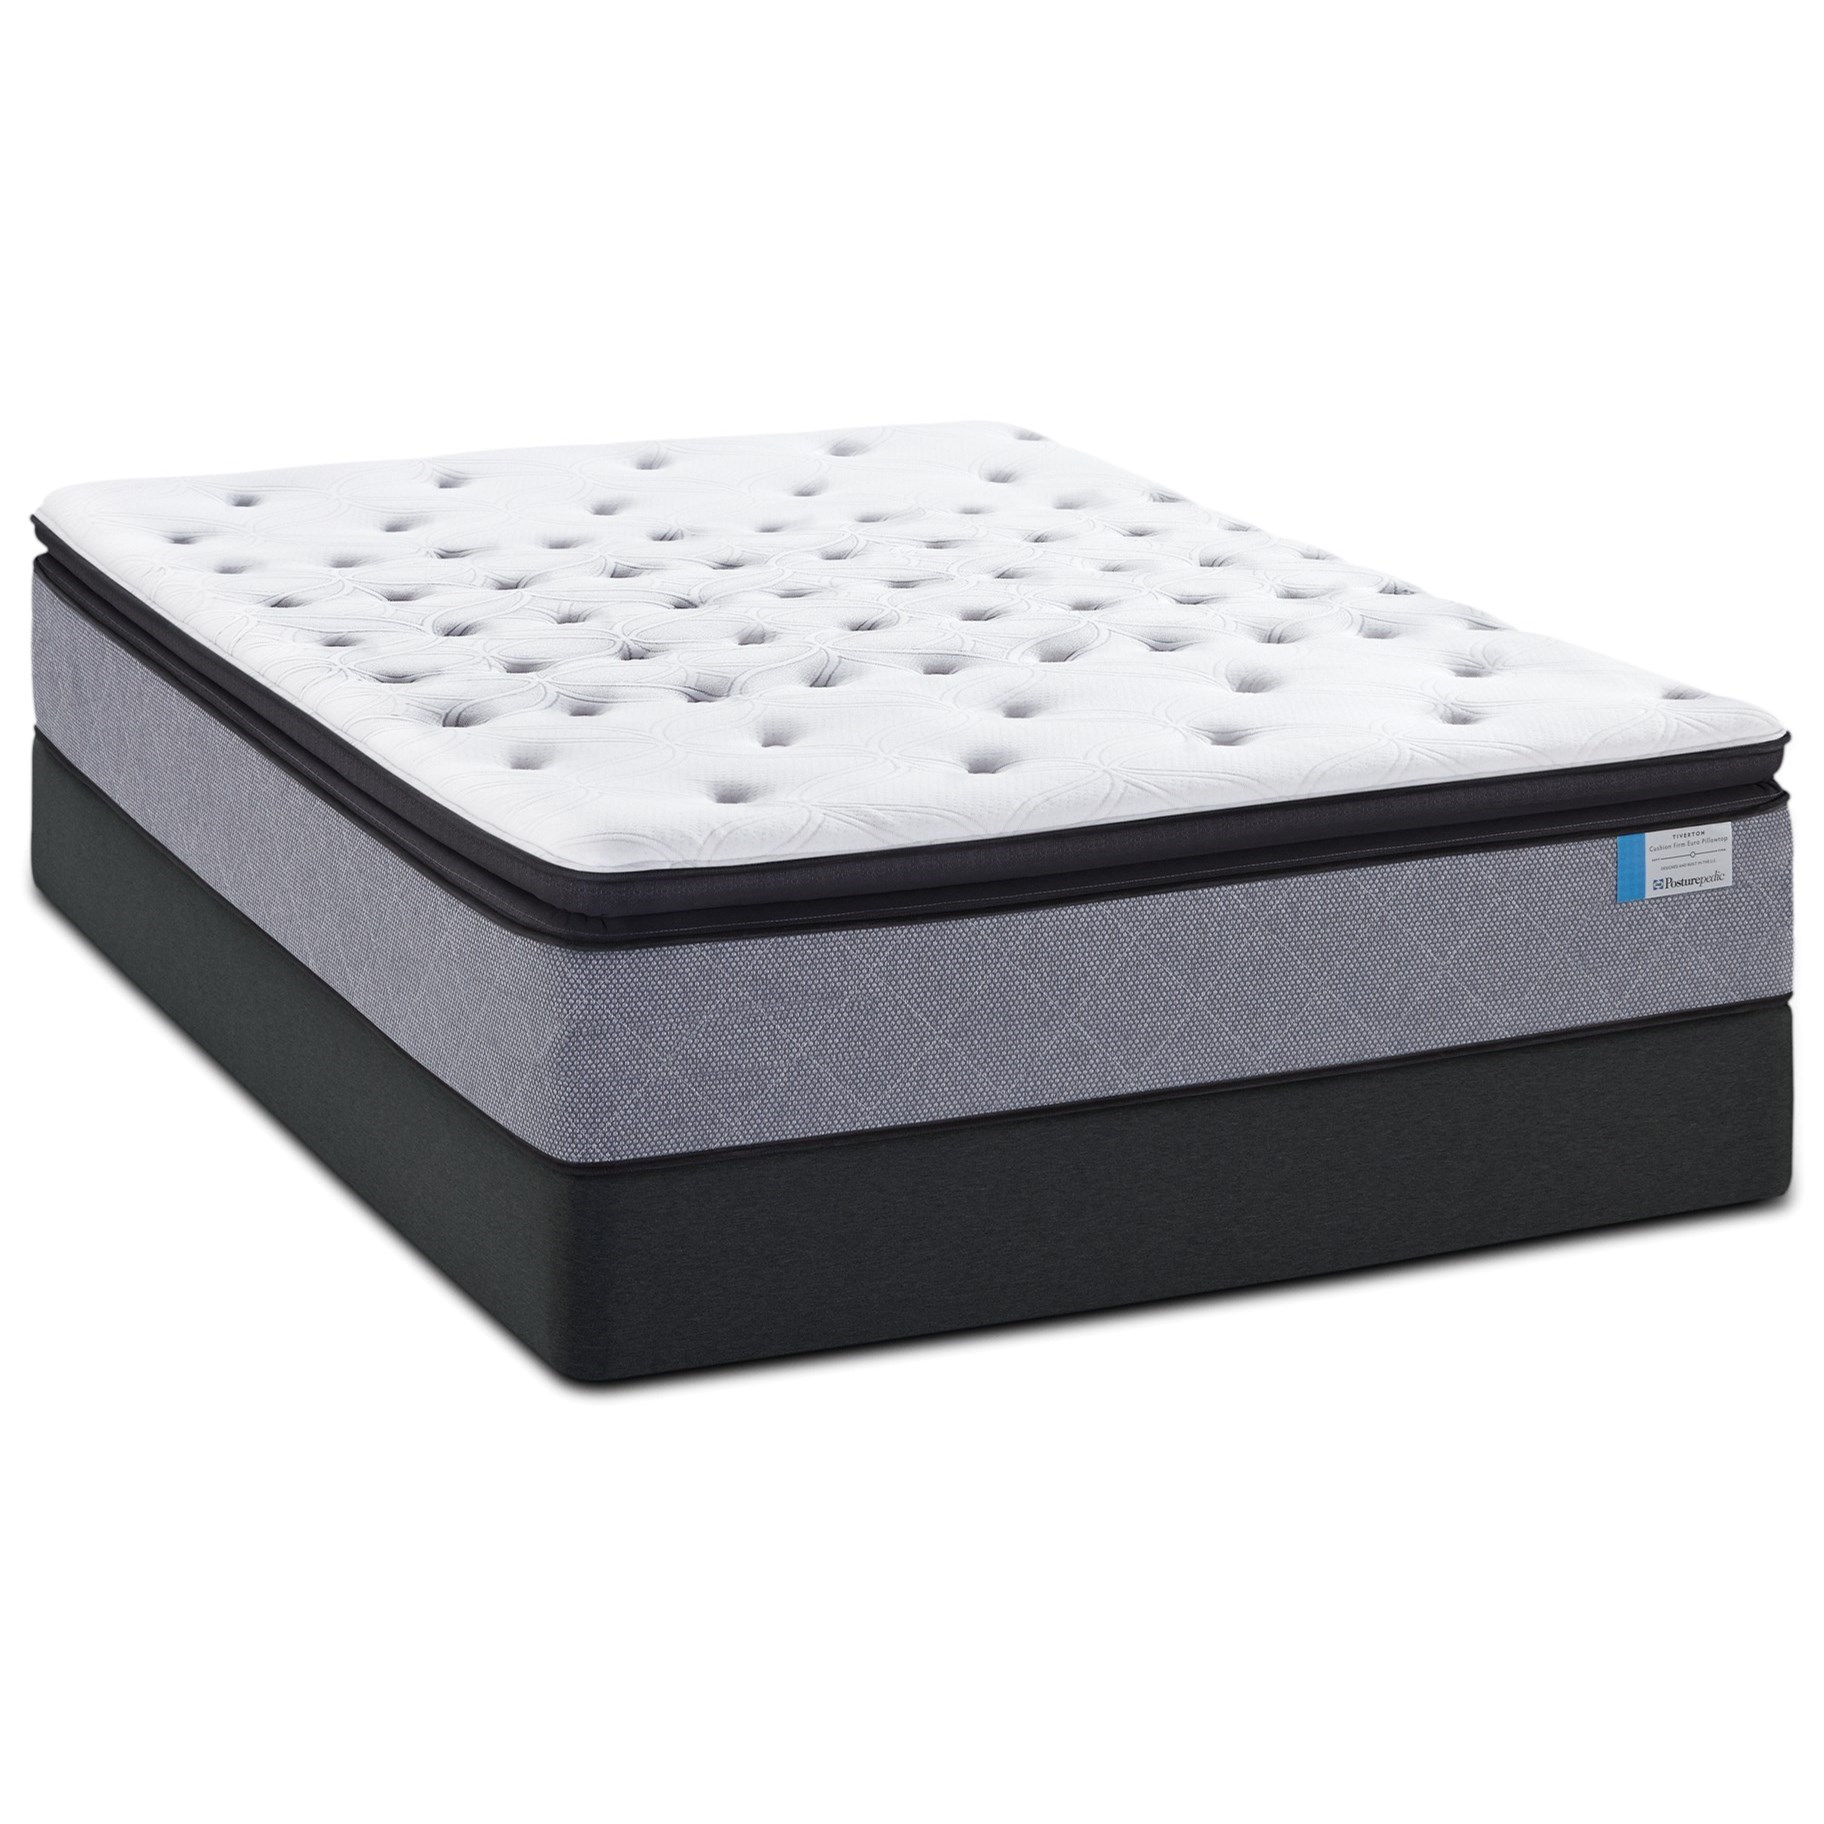 Sealy Norseland Queen CF EPT Mattress Set - Item Number: CushionFirmEPT-Q+613791-Q